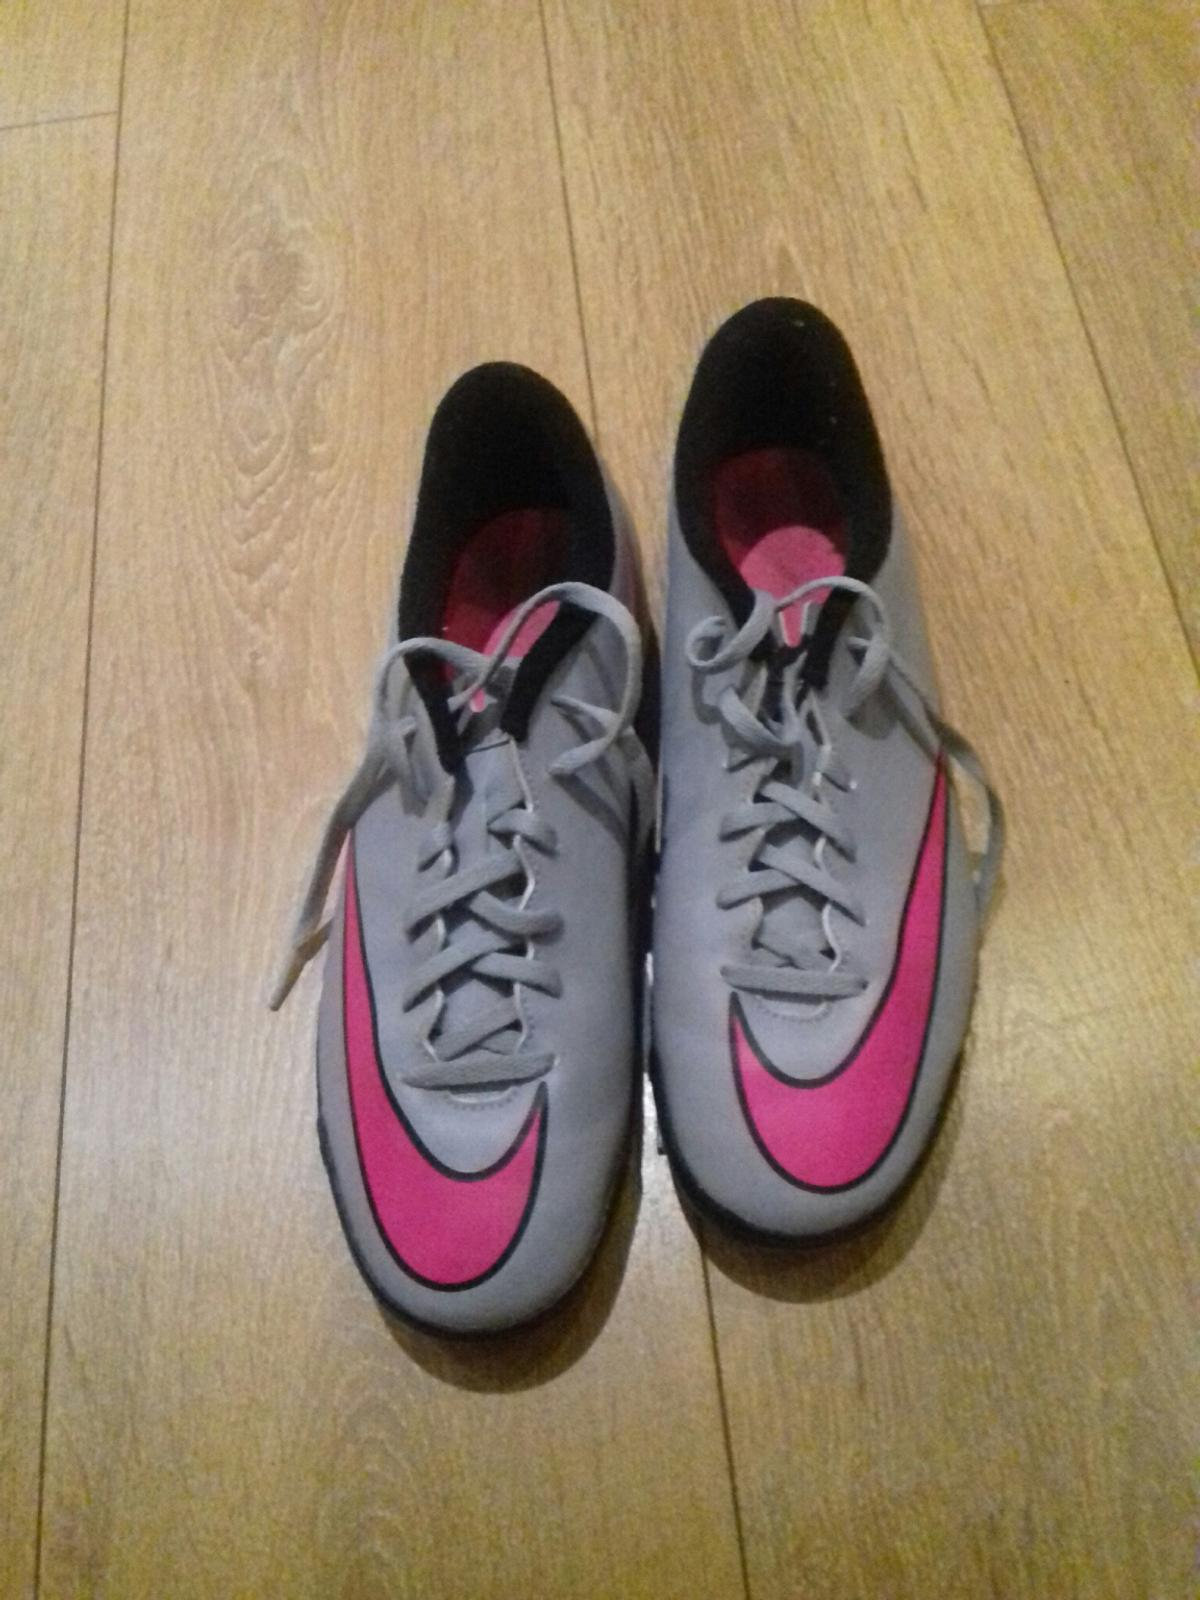 nike astroturf boots, adult size 8.5, used once for about 30 minutes no box